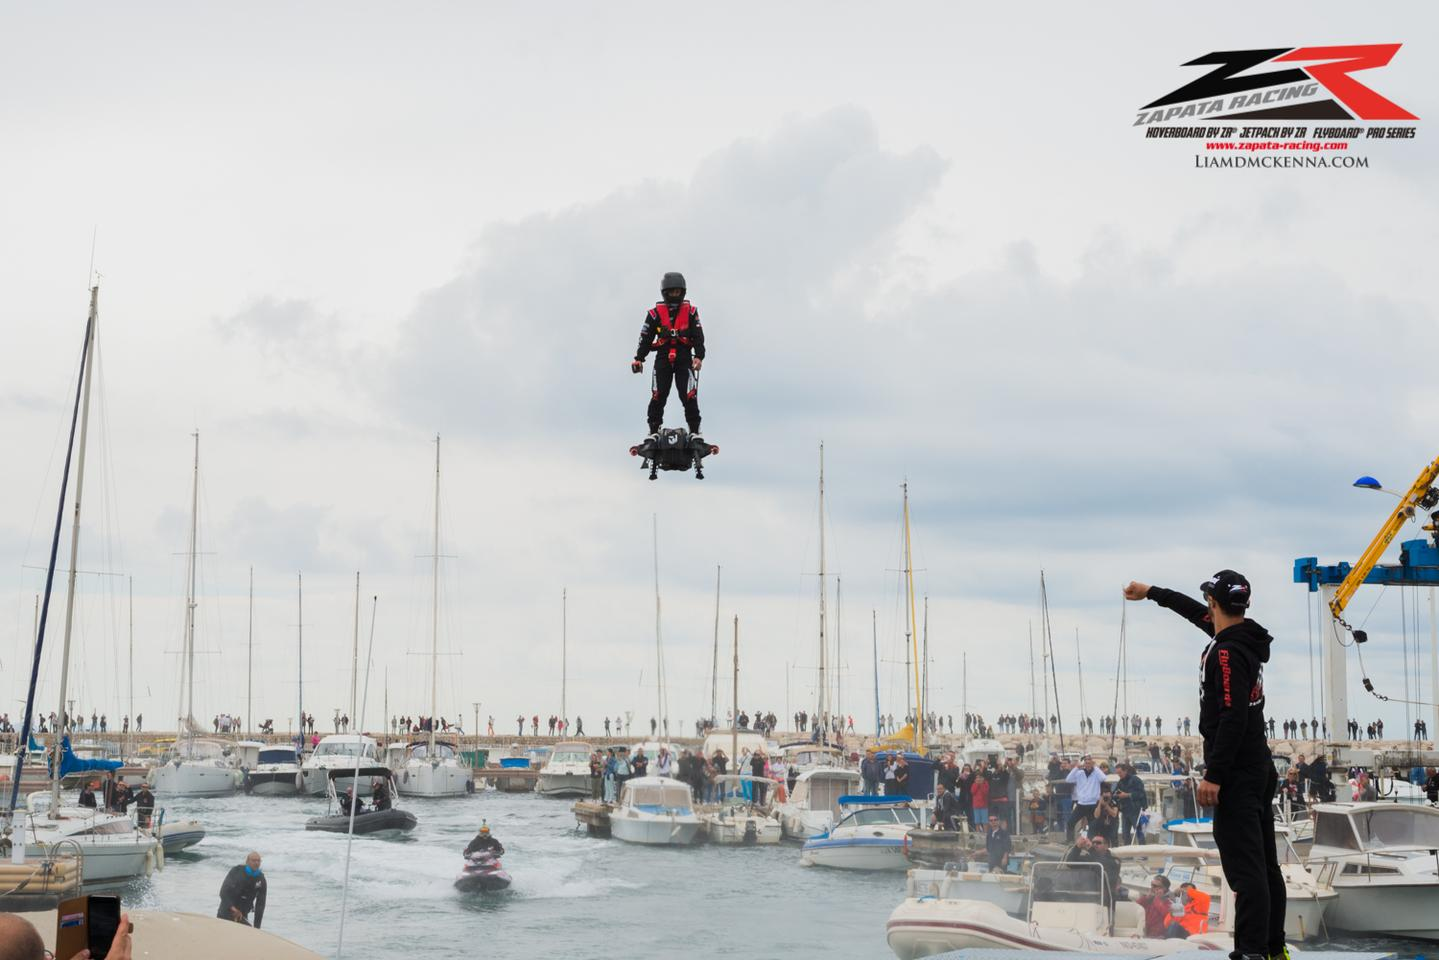 Official photo showing Franky Zapata coming in to land at Sausset-les-Pins in the south of France